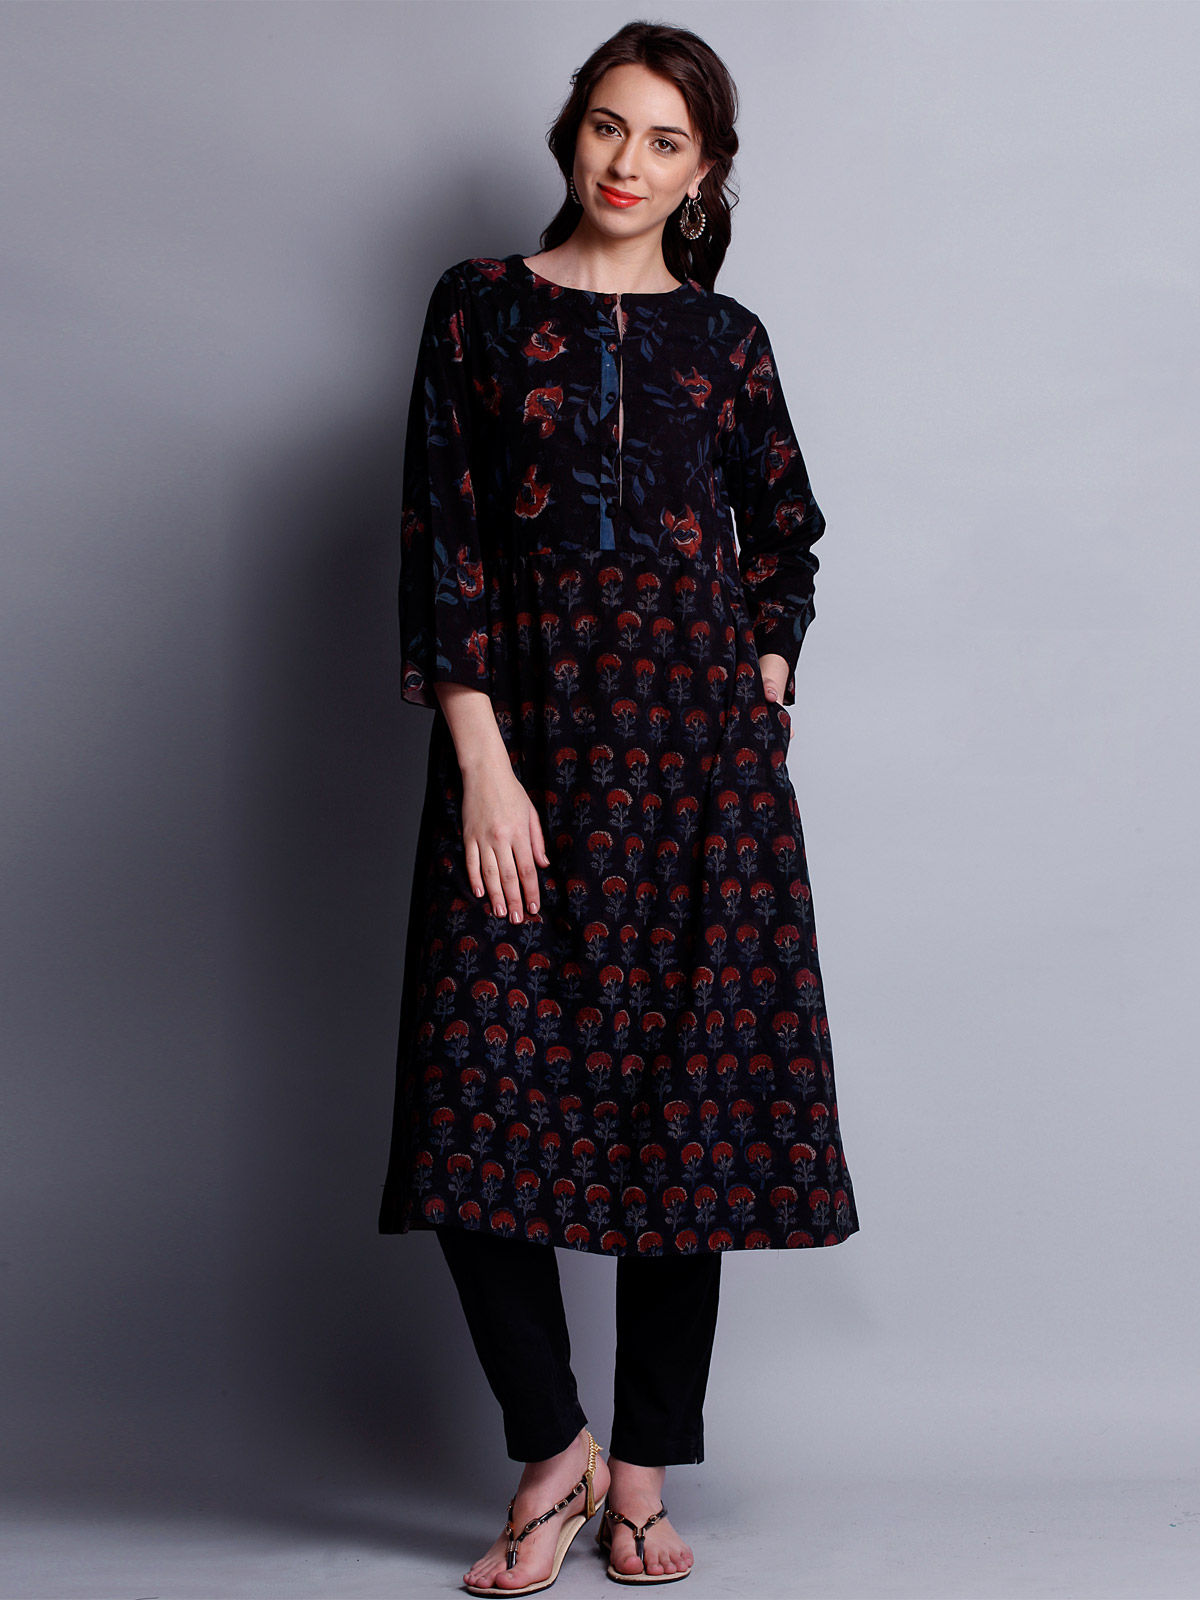 Block Printed full sleeves ankle length Tunic